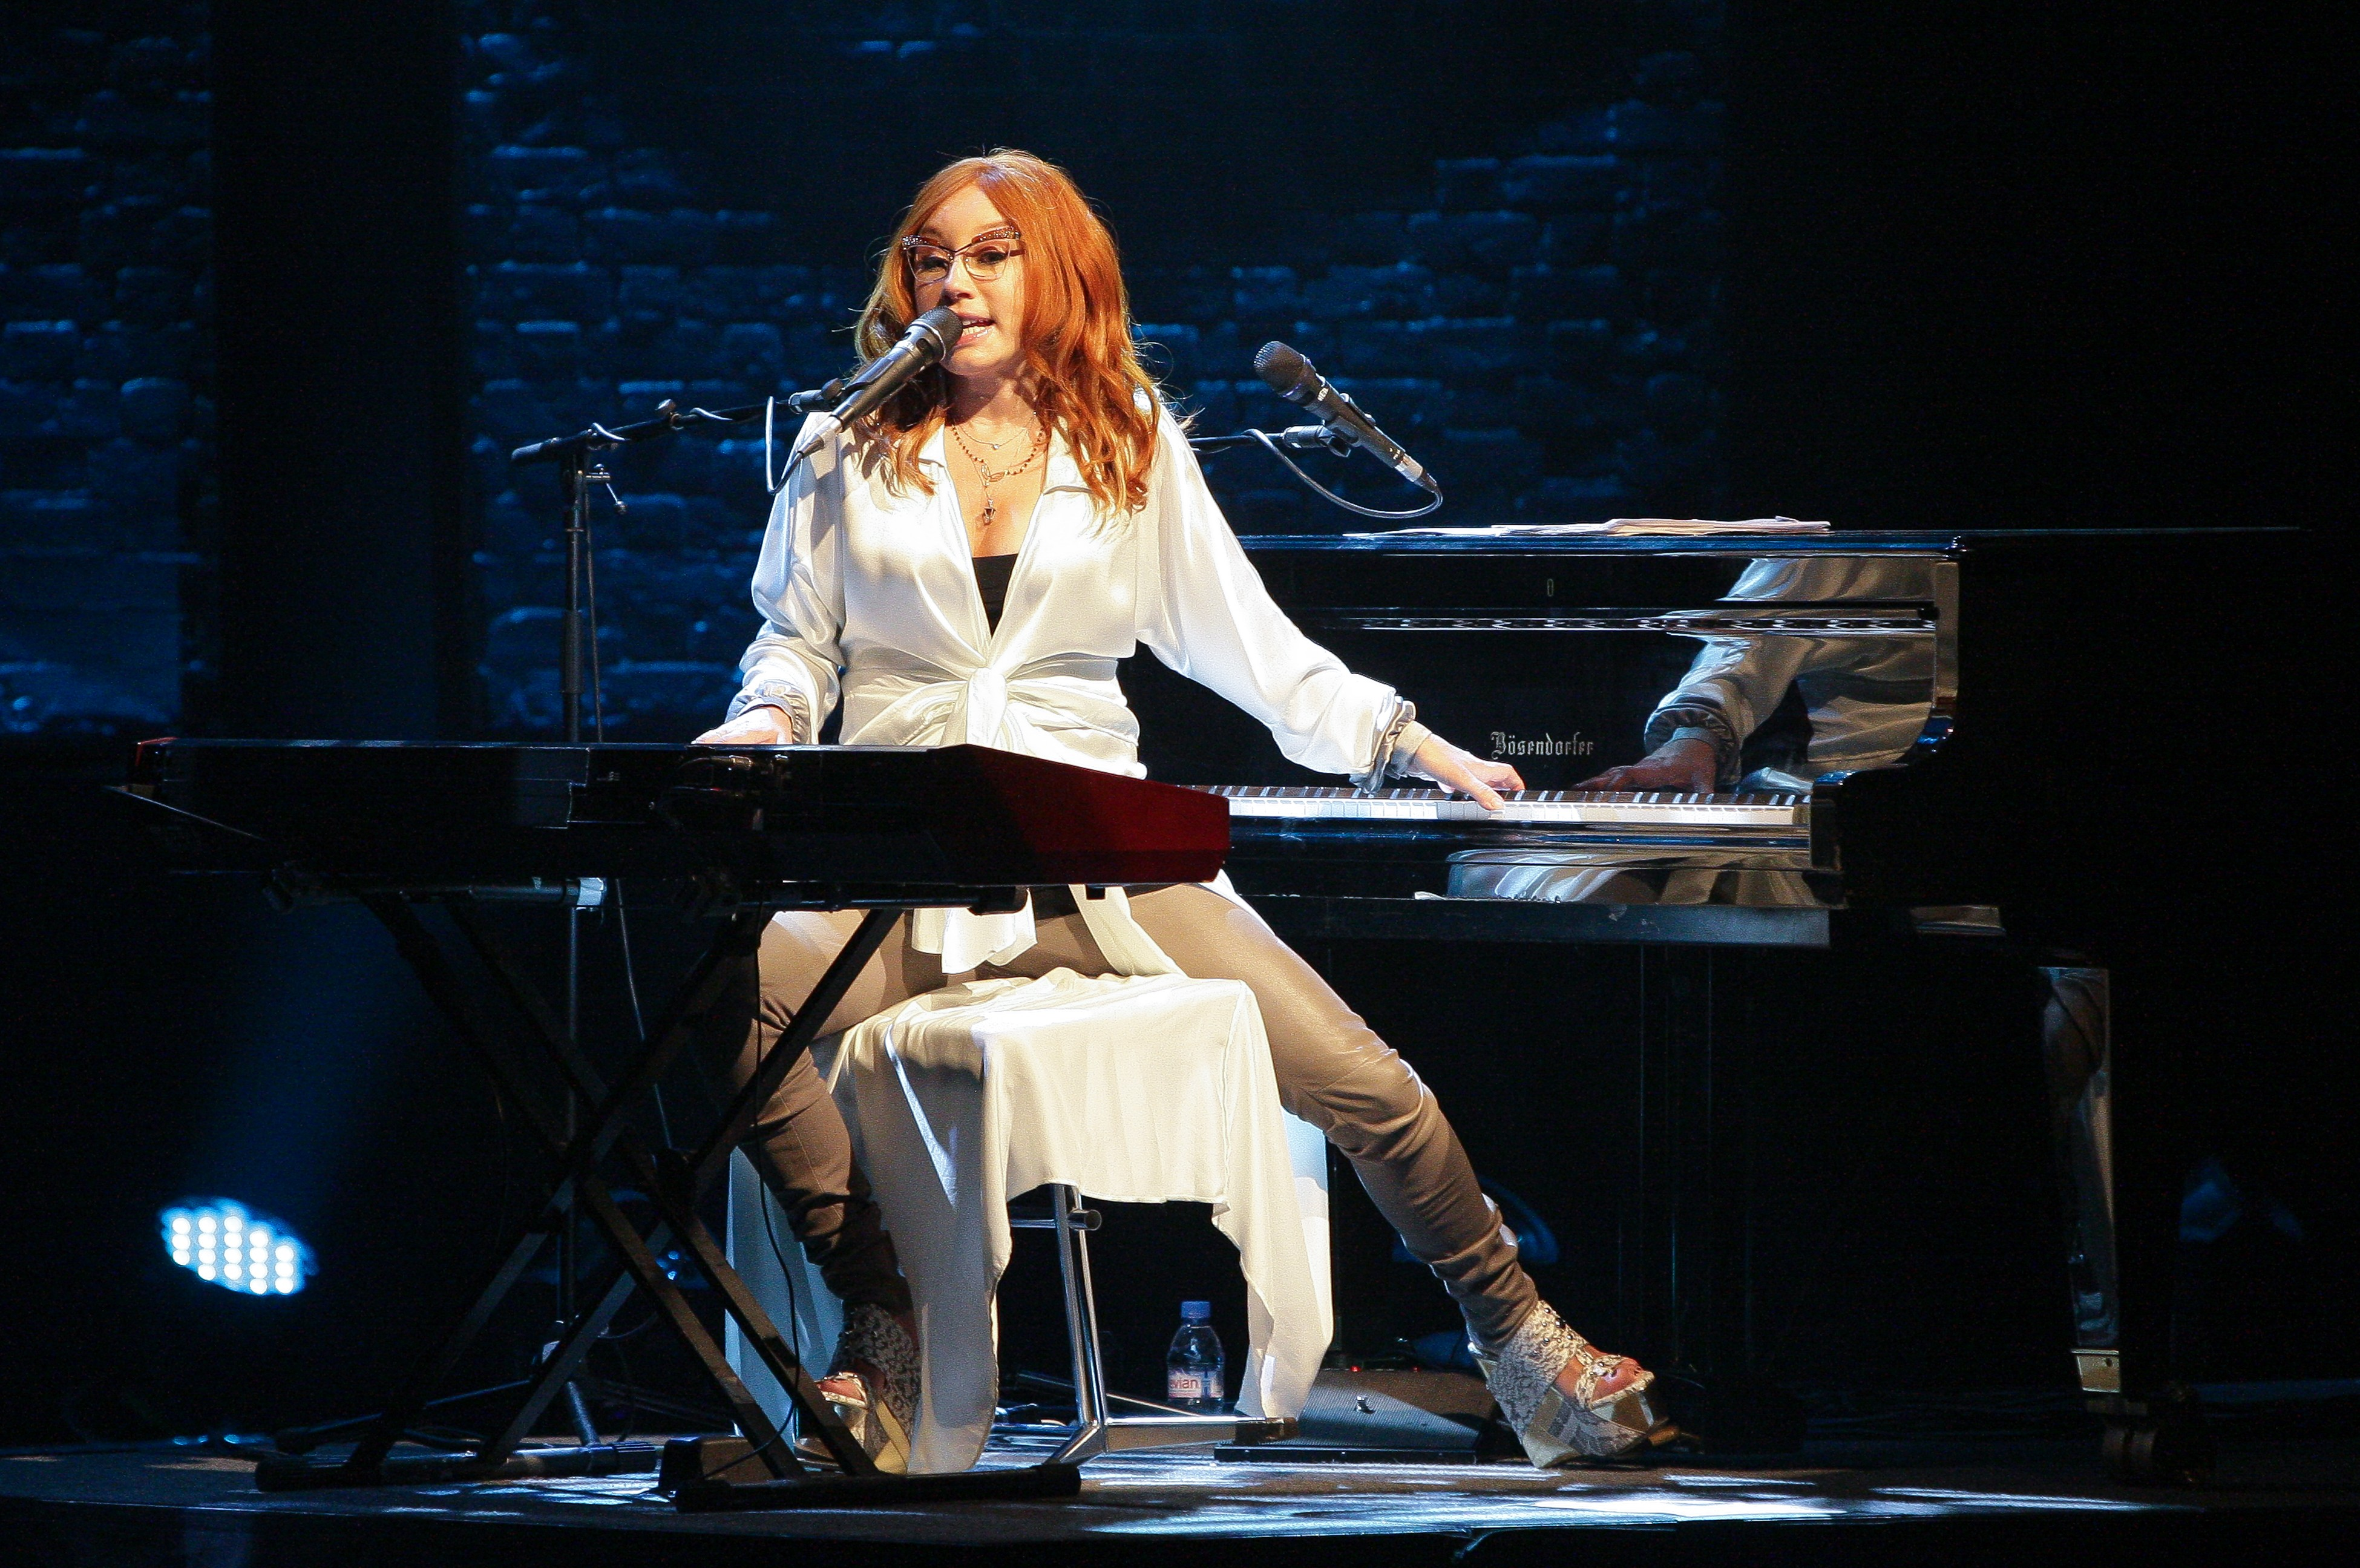 Tori Amos Most Popular Chords And Songs